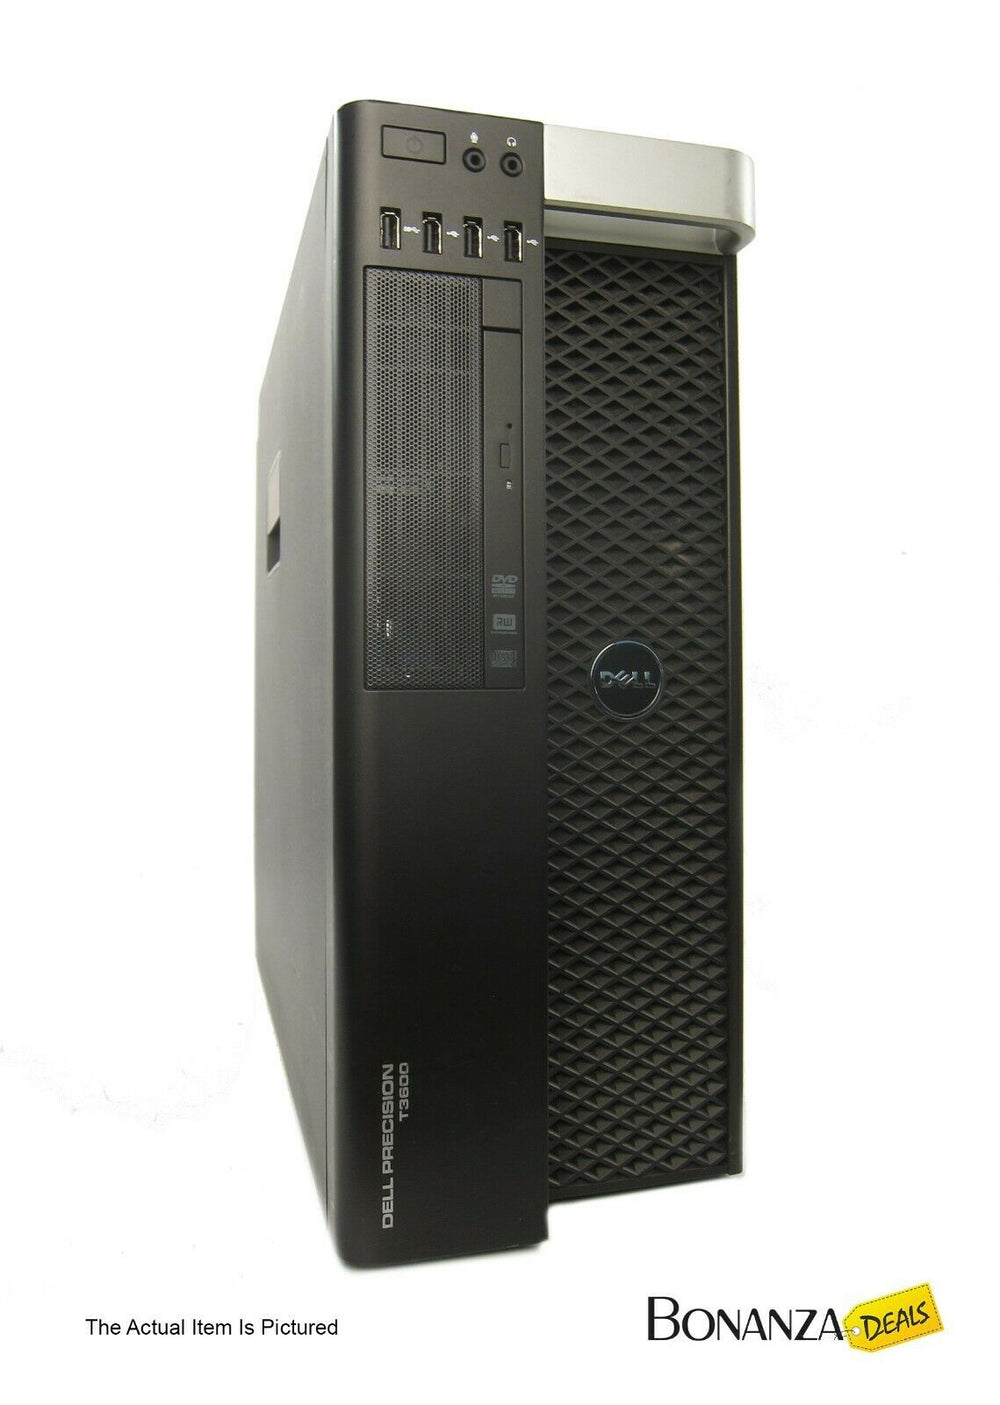 Dell Precision T3600 Workstation Xeon E5-1650 6-Core 3.2GHz 32GB 2TB Quadro K2200 - Bonanza Deals